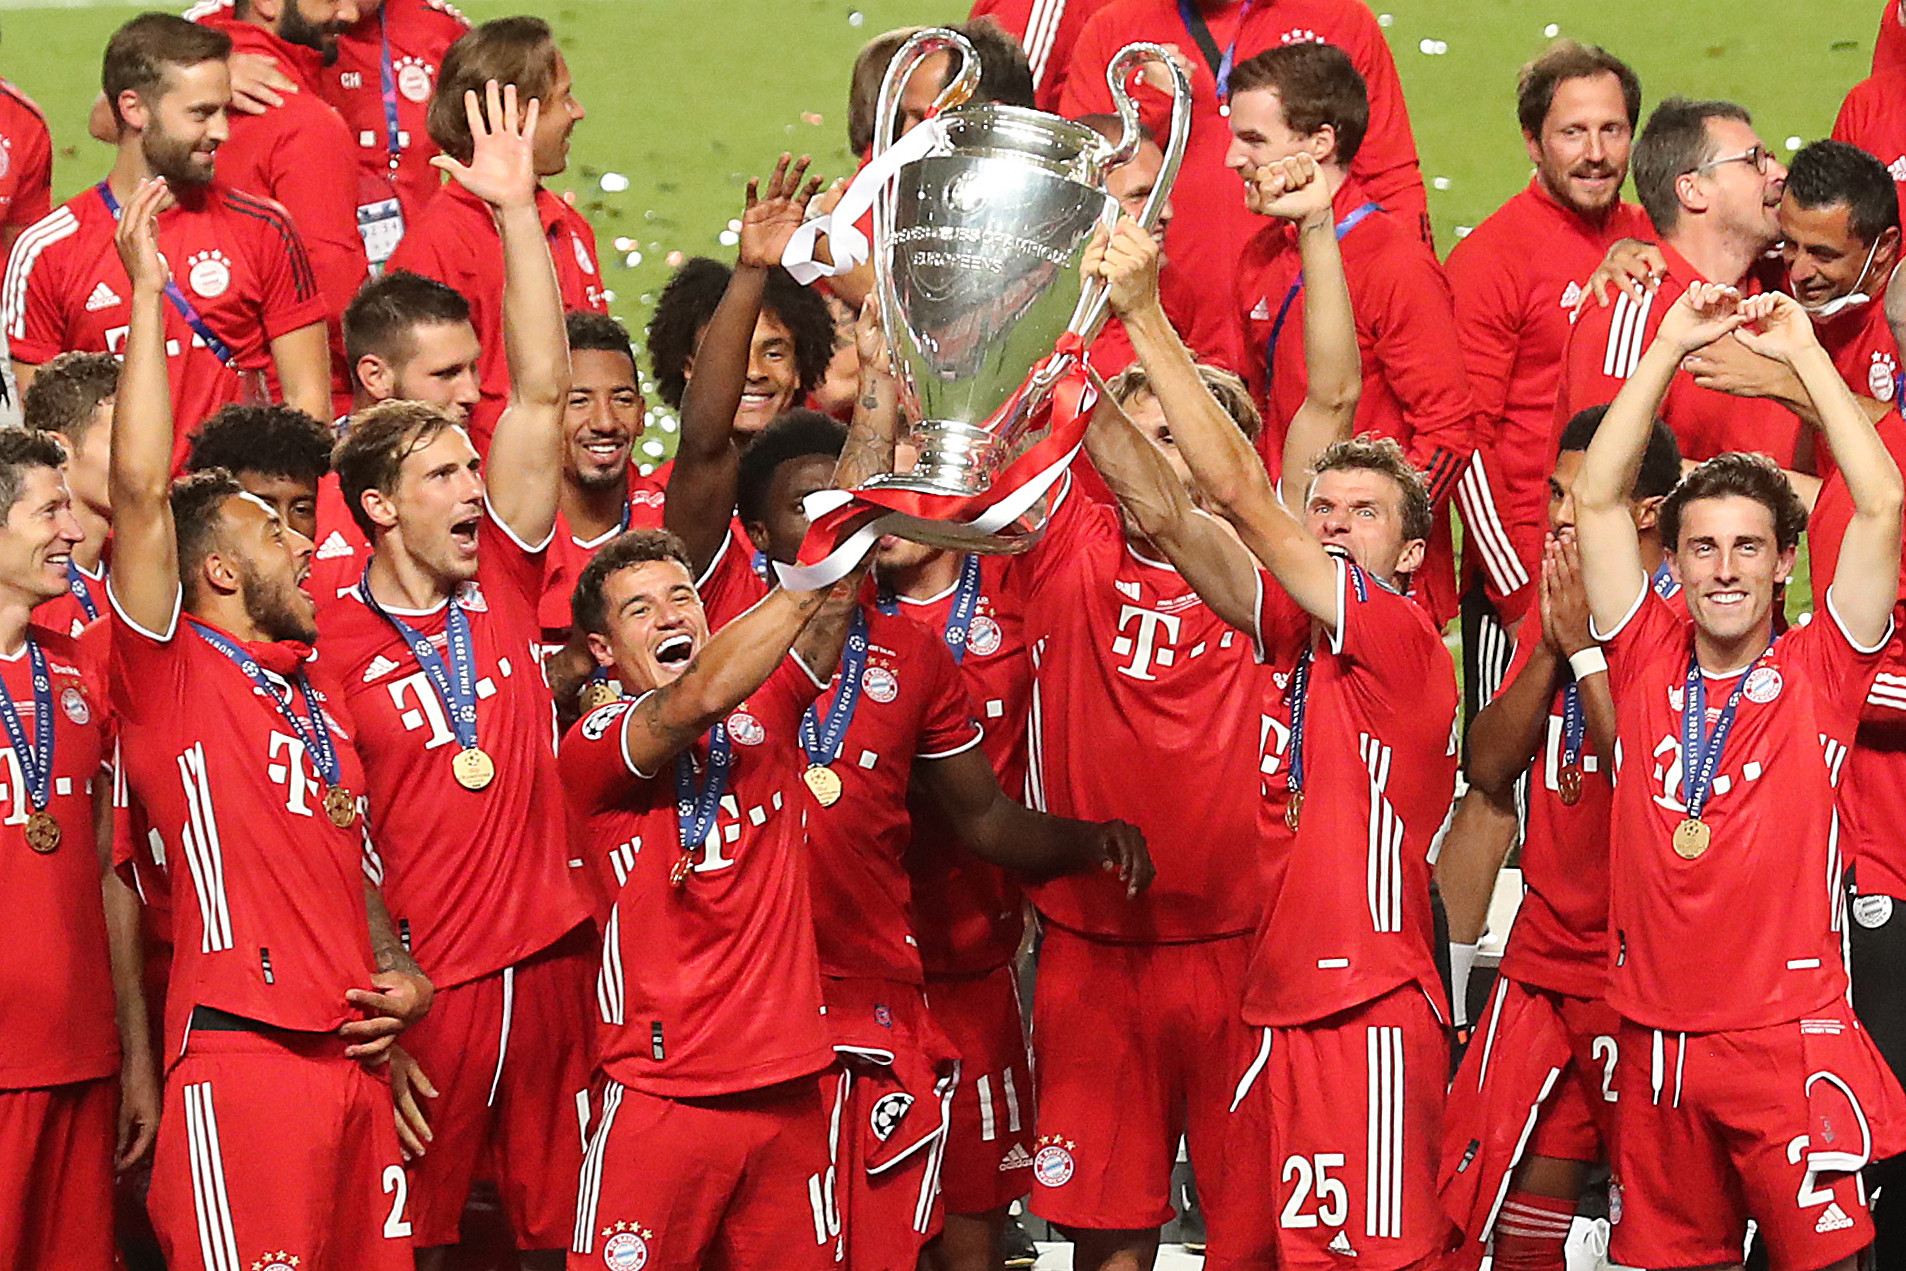 Bayern Munich are up for the Laureus World Team of the Year Award after winning the UEFA Champions League ©Getty Images